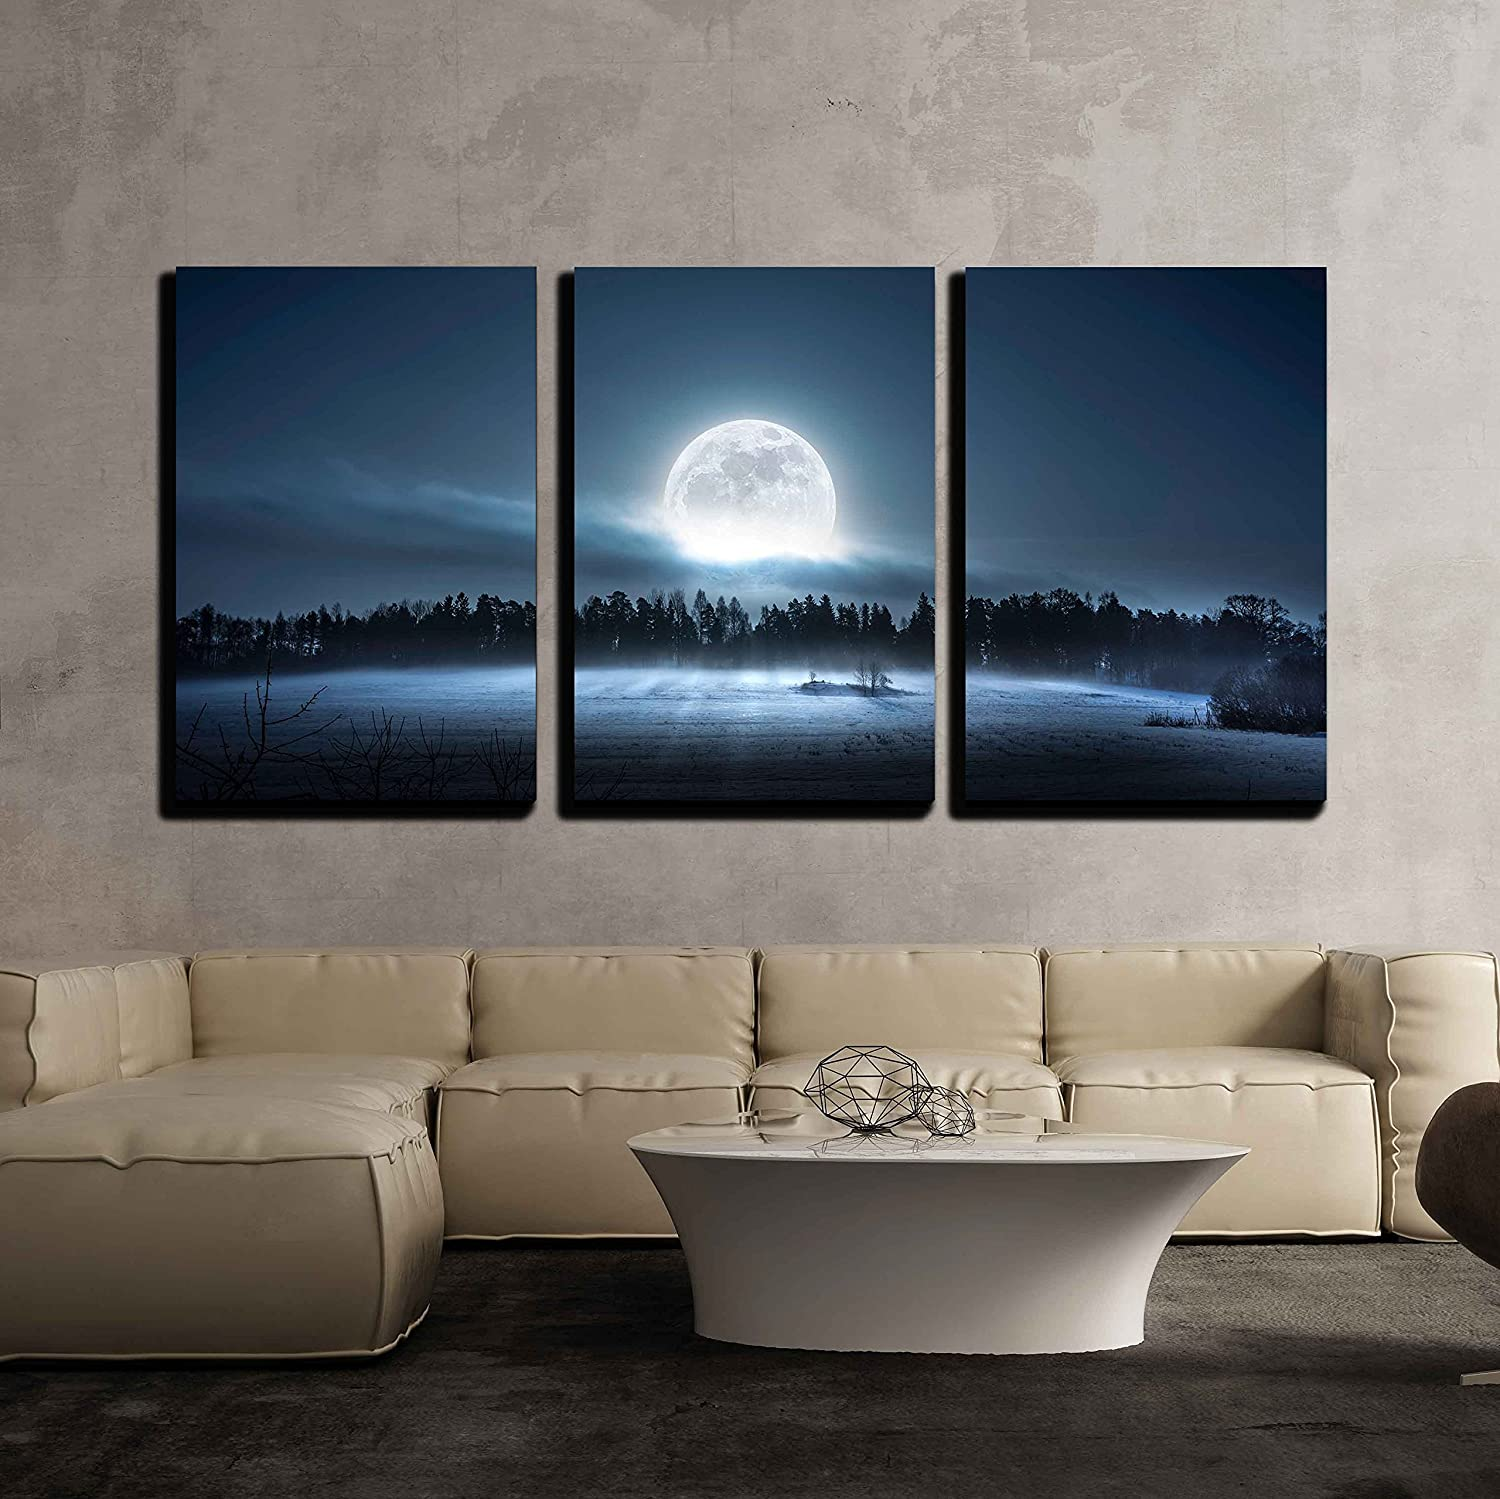 Wall26 - 3 Piece Canvas Wall Art - The Moon Rising Over The Forest and Meadow in The Cold and Misty Morning - Modern Home Decor Stretched and Framed Ready to Hang - 16 x24 x3 Panels